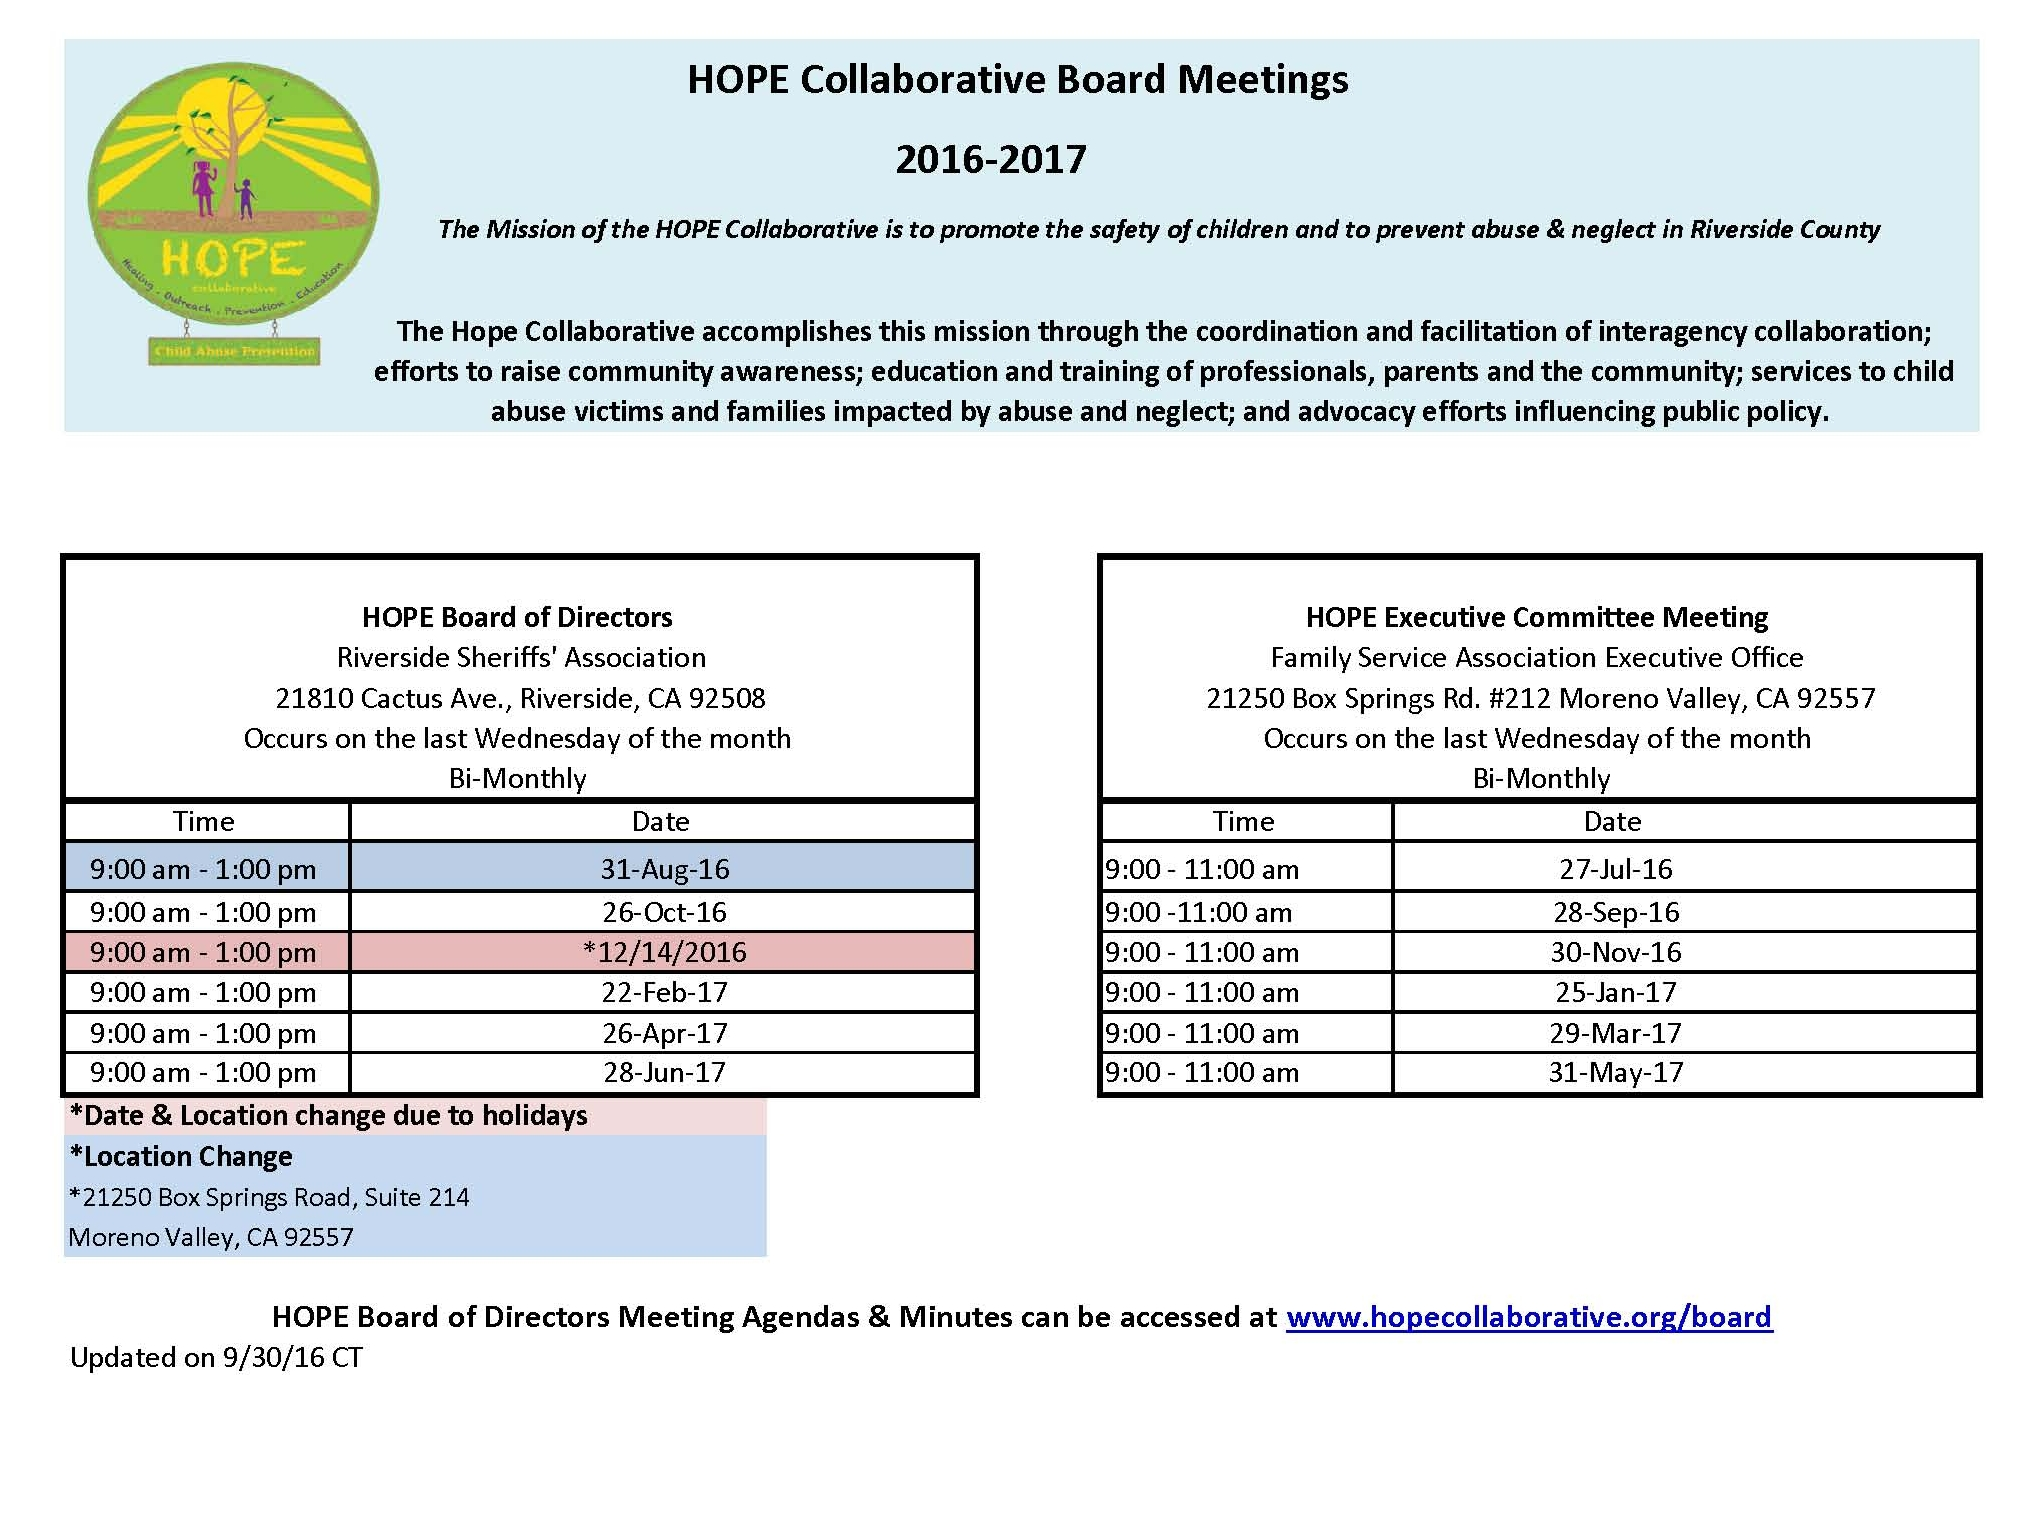 Board Meeting Agenda  Minutes \u2014 Hope Collaborative